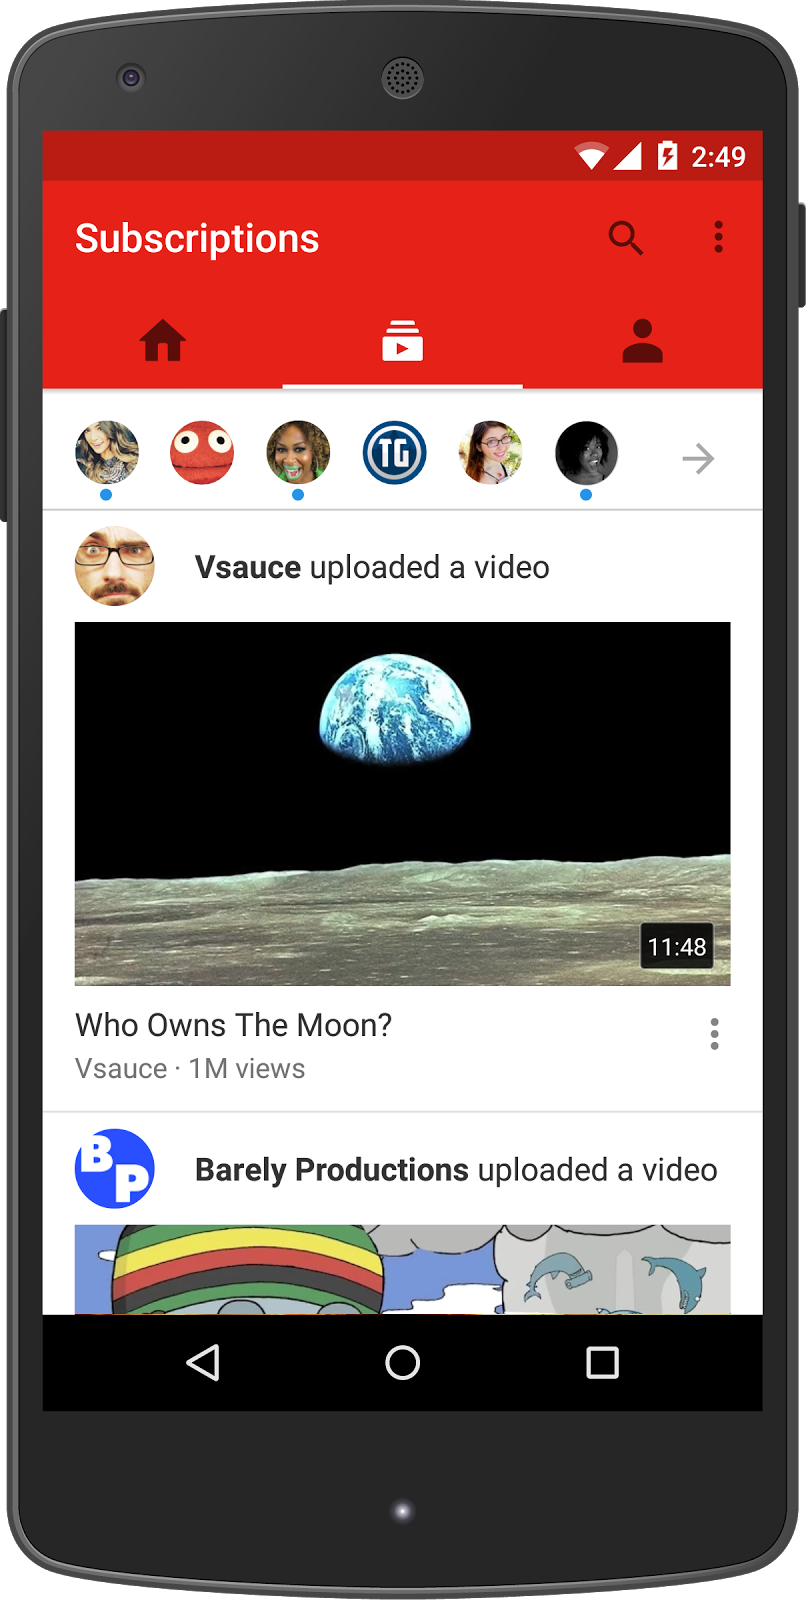 YouTube redesign Subscriptions Android screenshot 001